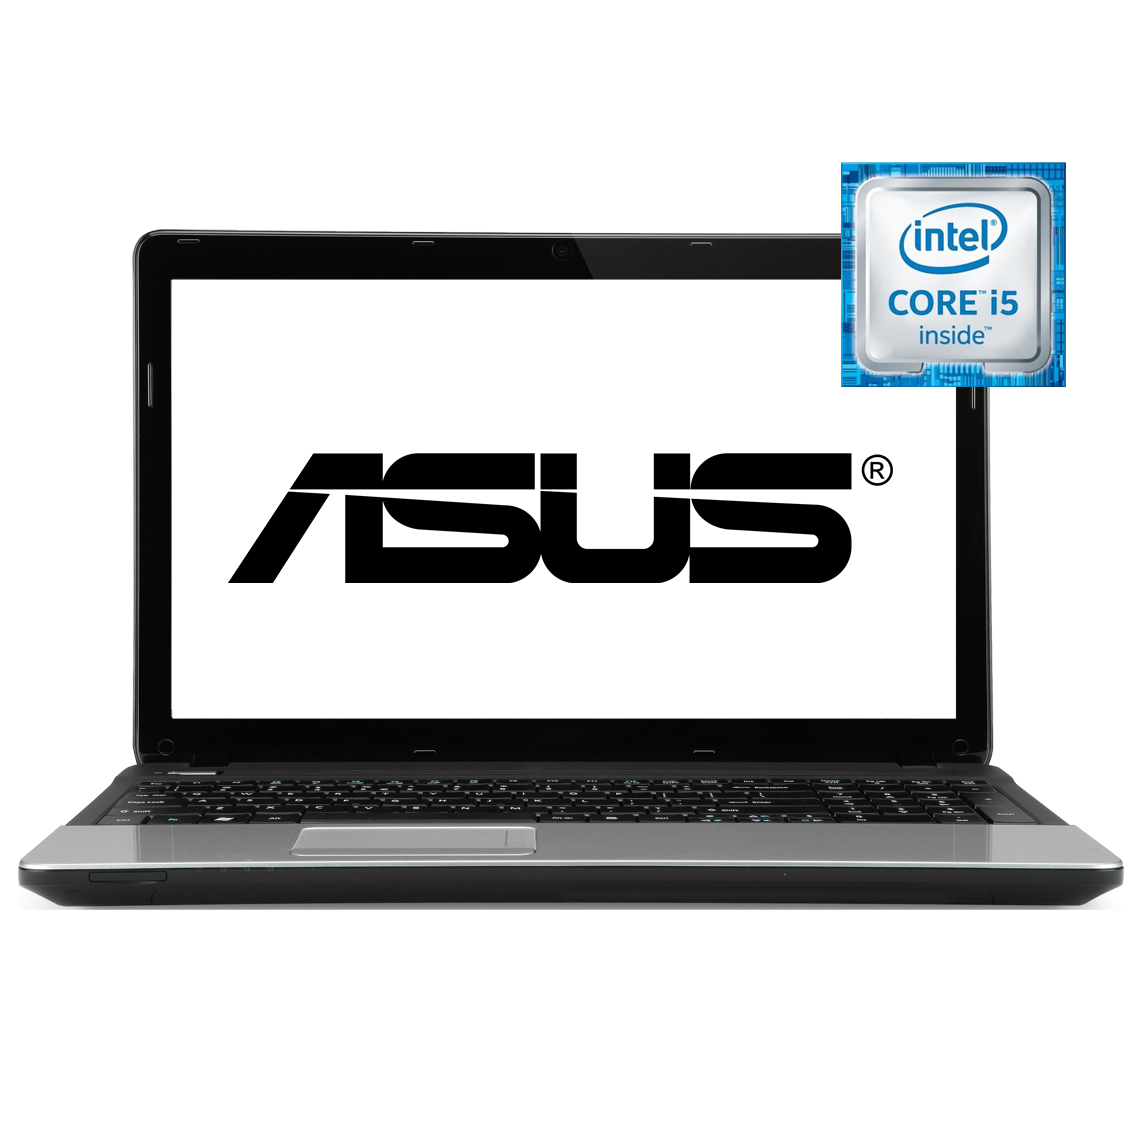 ASUS - 14 inch Core i5 2nd Gen